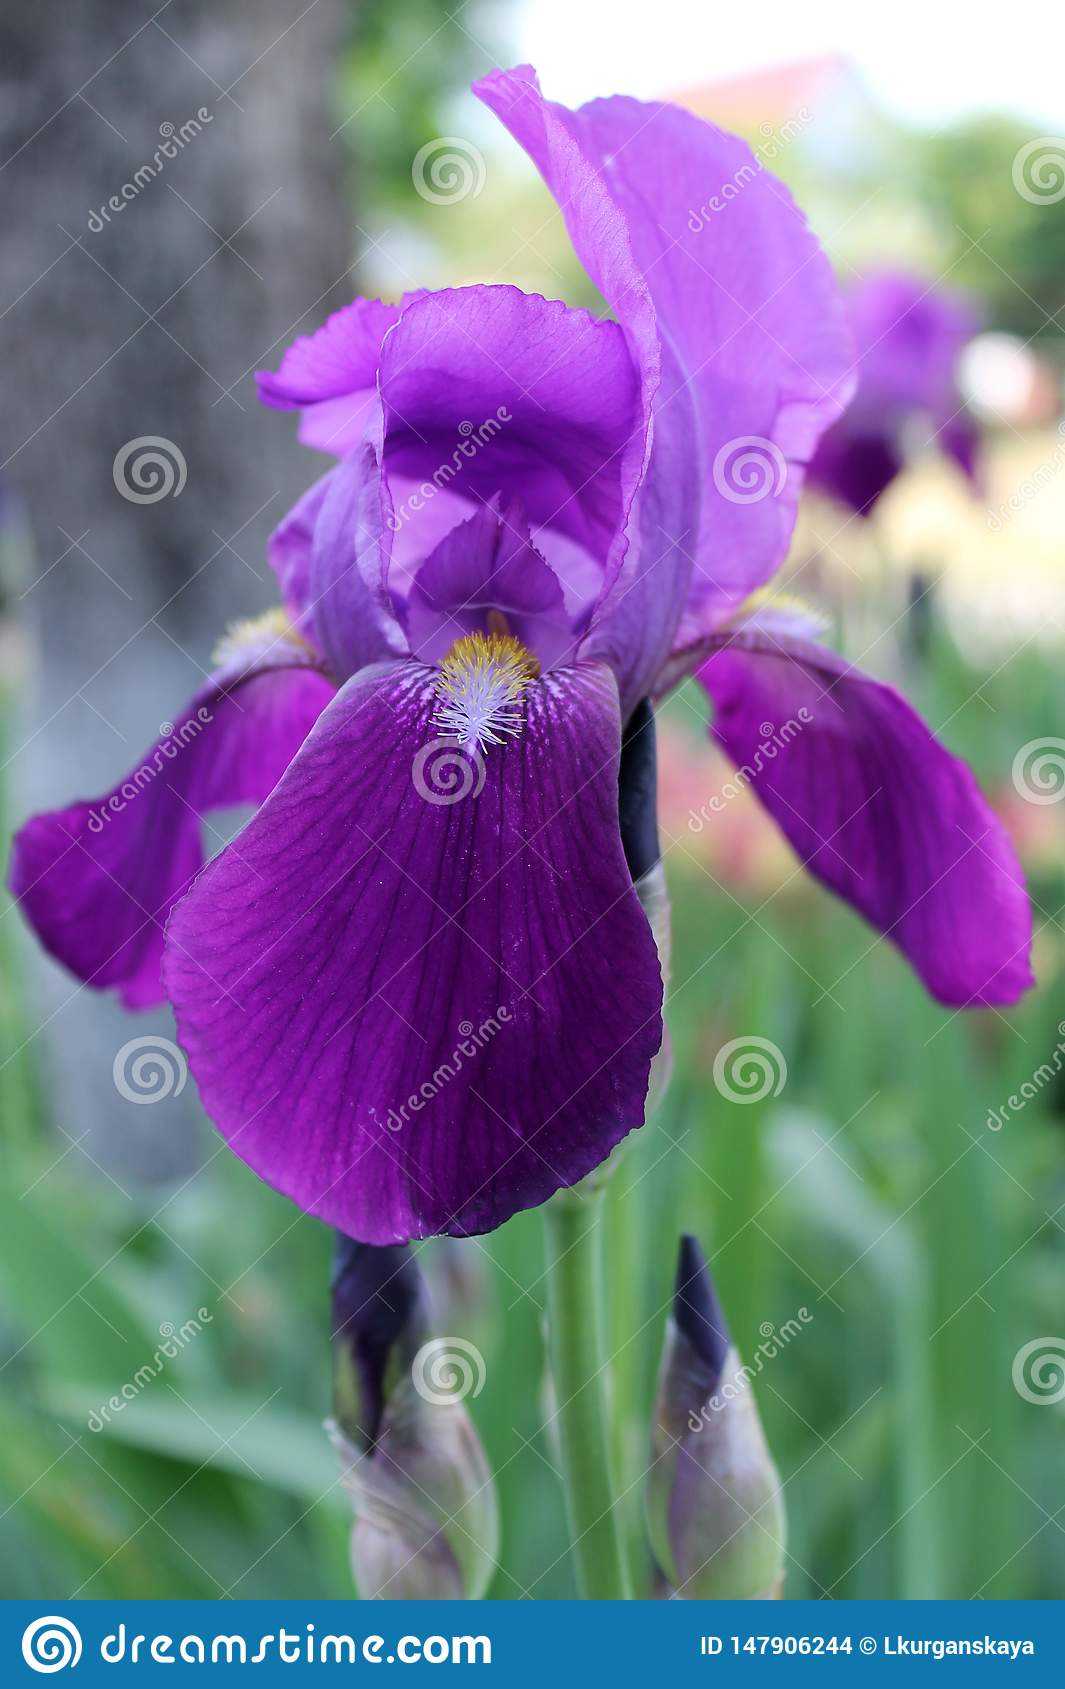 The iris flower. Beautiful purple flower in bloom on a crisp spring morning